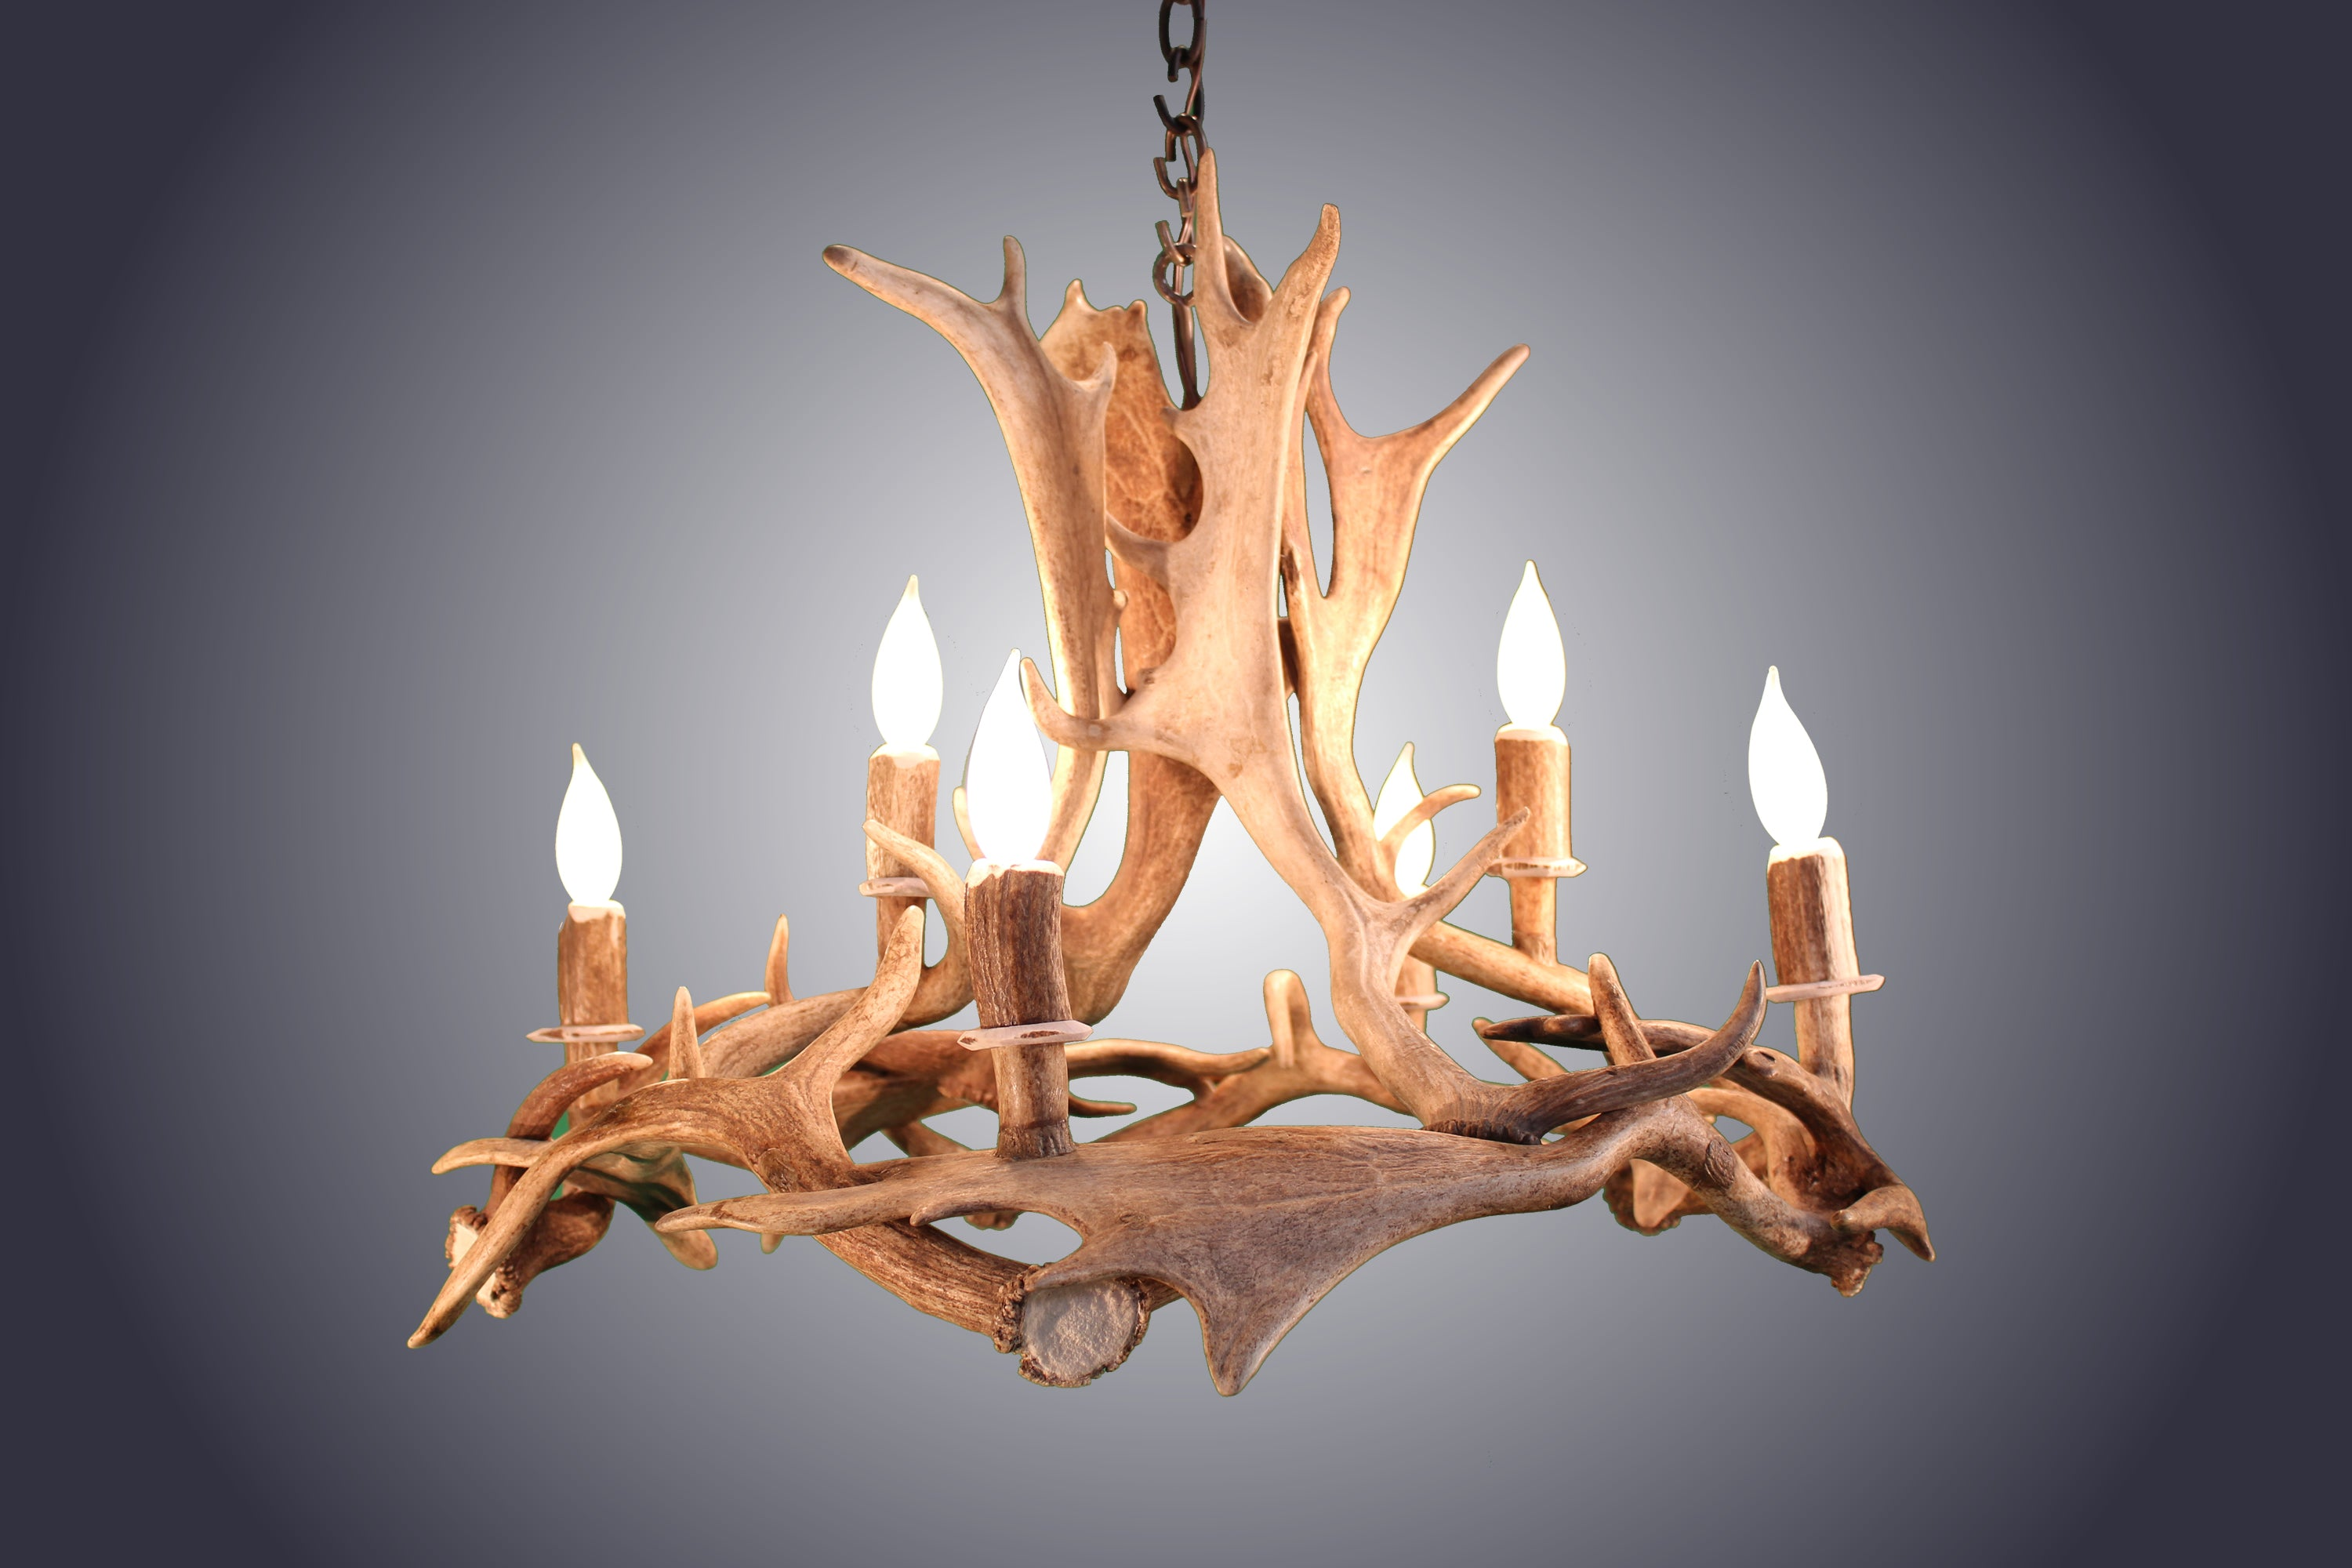 6 Light Fallow Ring Antler Chandelier (AWC-89) - Antlerworx